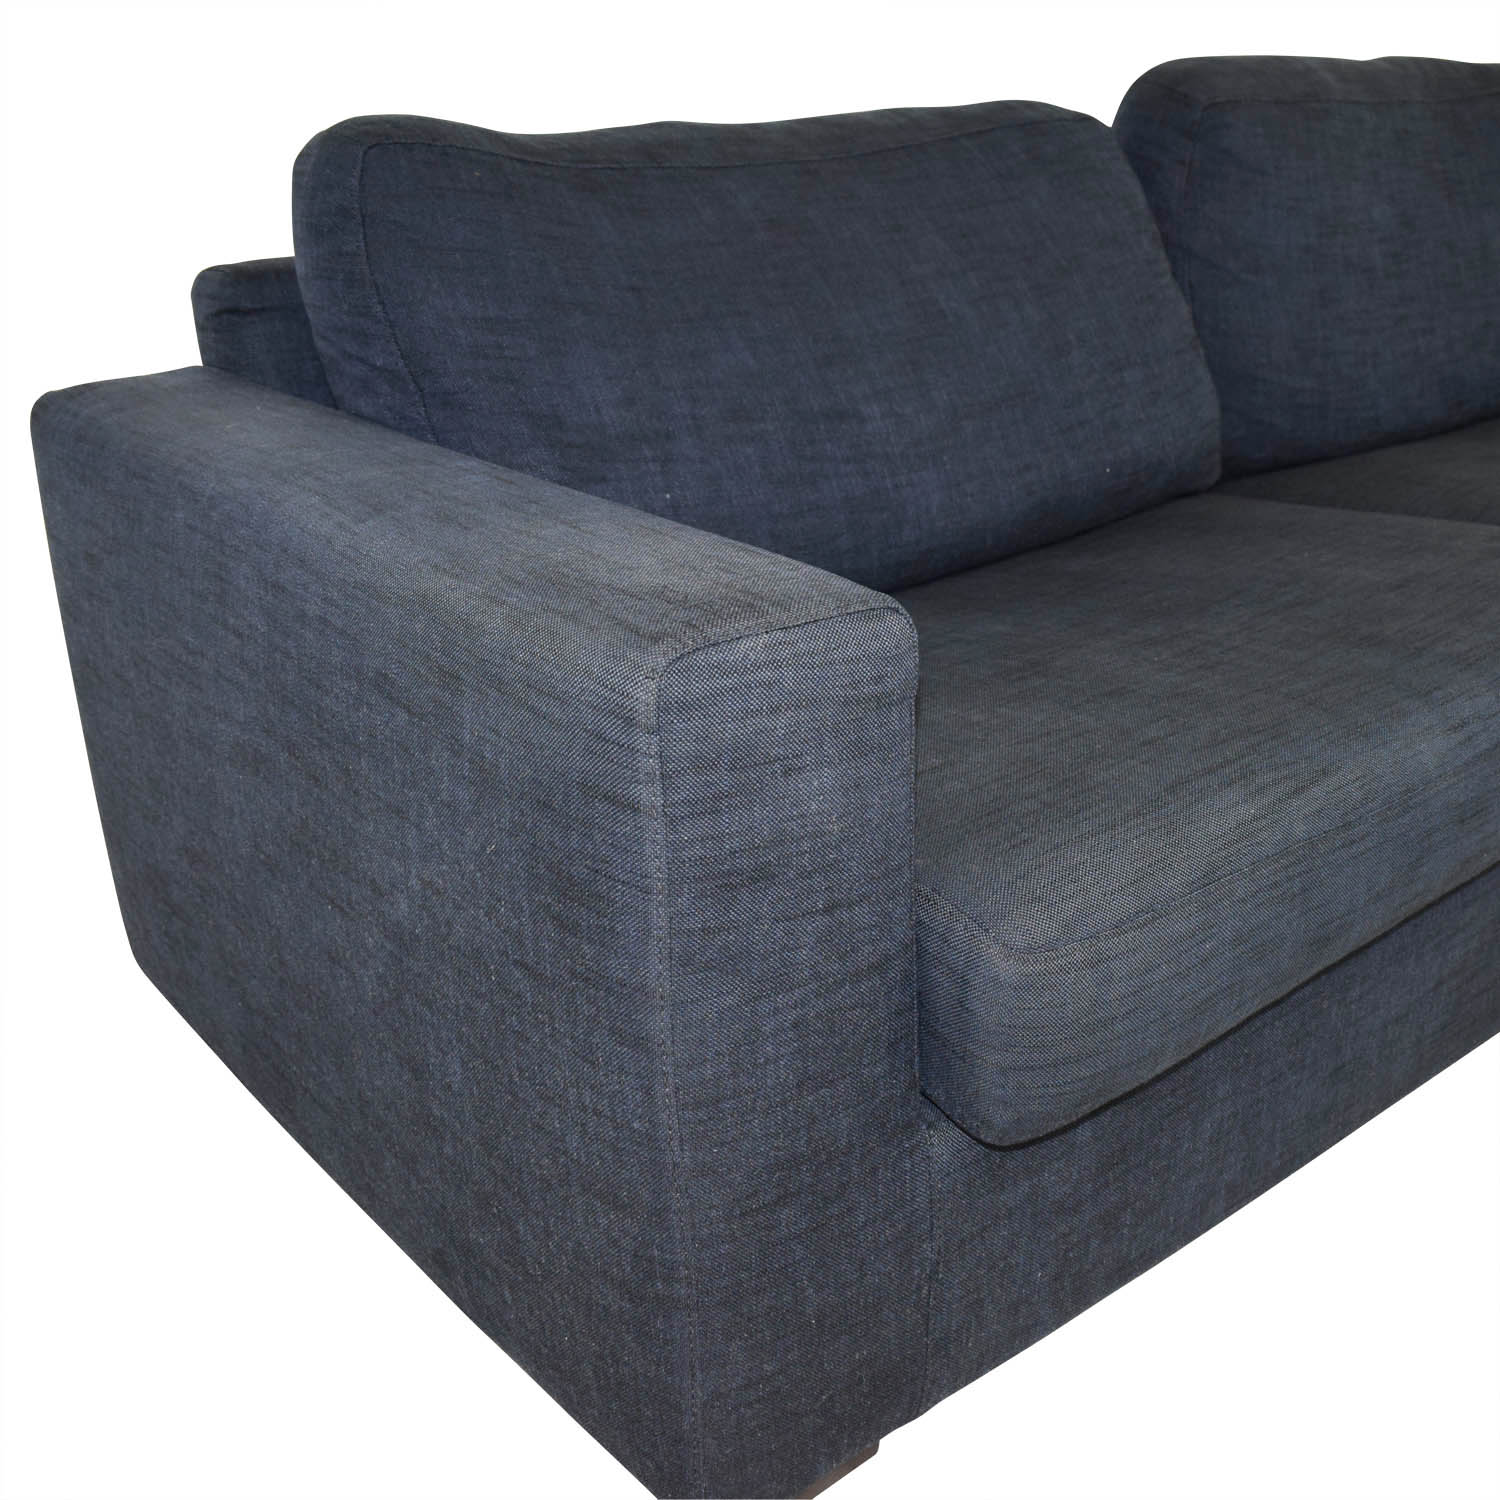 Meridiani Meridiani Italian Navy Linen Two-Cushion Couch for sale